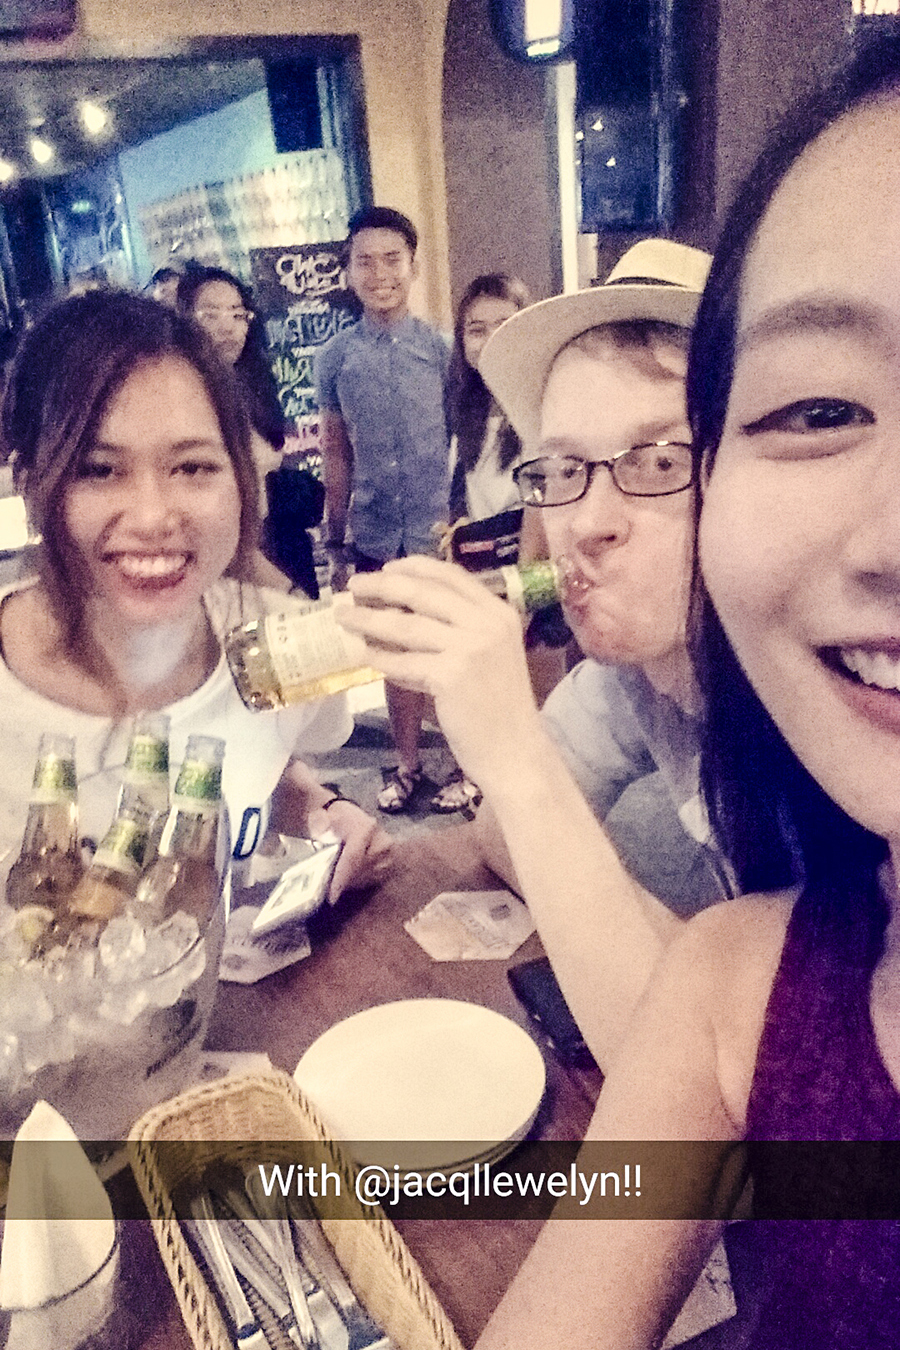 Selfie with Somersby Apple Cider bucket with Jacq and Ottie at Five Tapas Bar, Singapore.